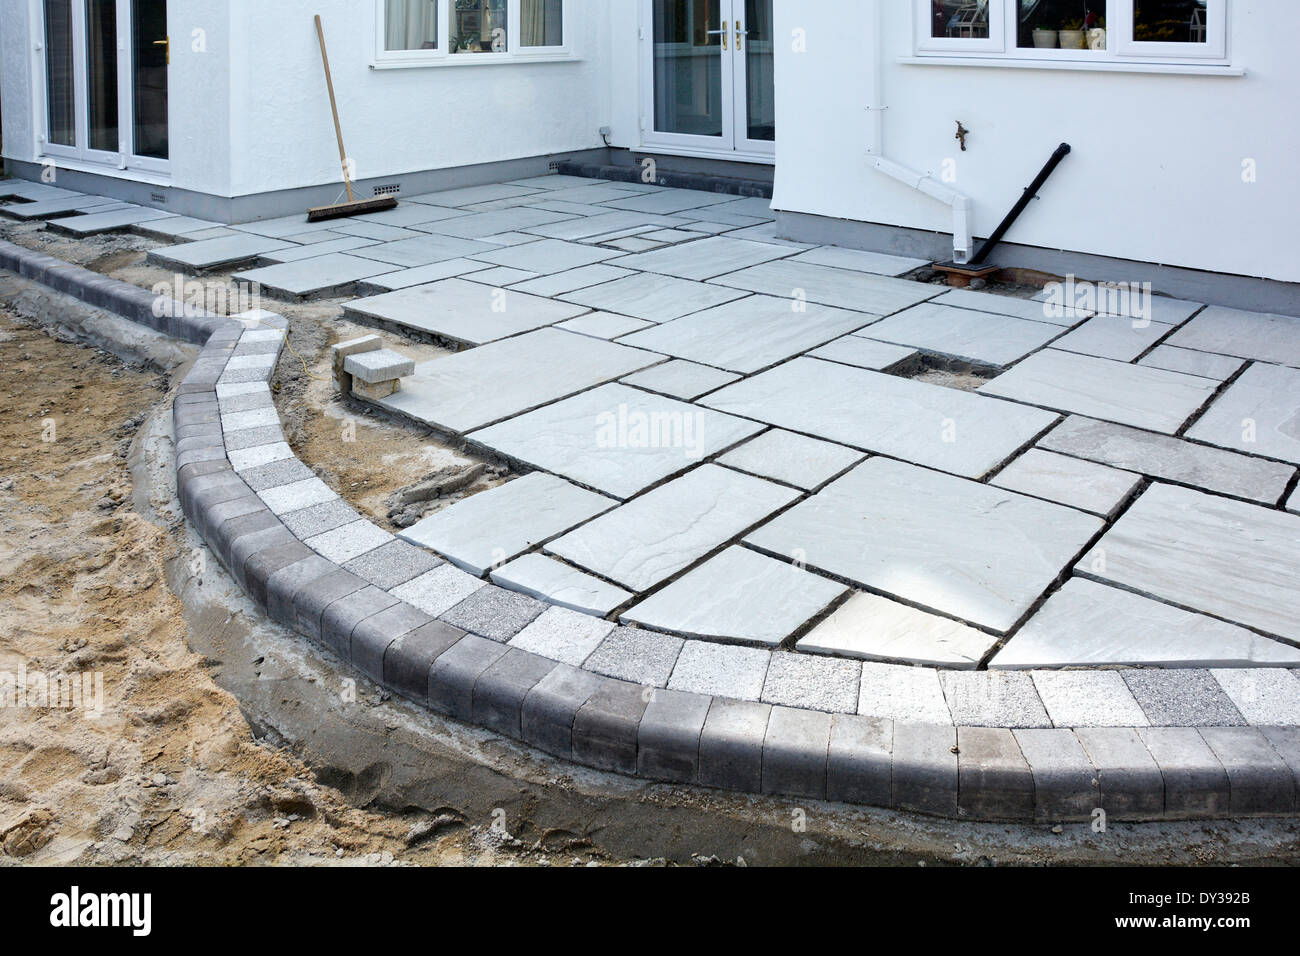 patio slabs. Paving Slabs Being Laid As A Patio To Back Garden Of Detached House After Completion Rear Extension Essex England UK